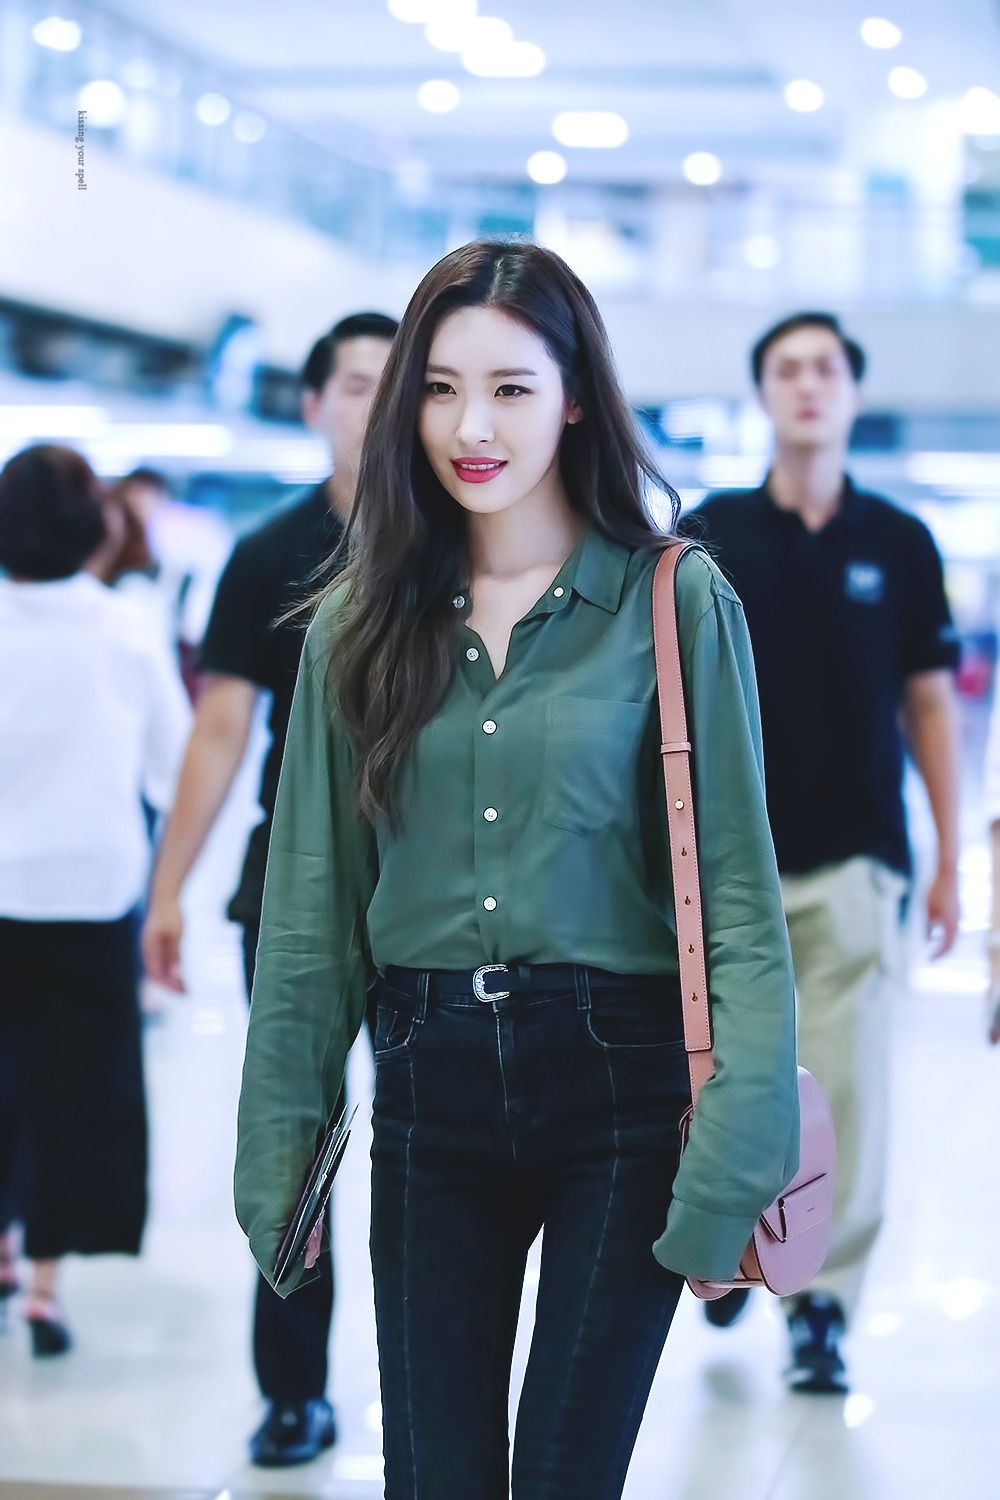 Pin By Favidols On From Reddit Pinterest Kpop Idol And Airport Fashion